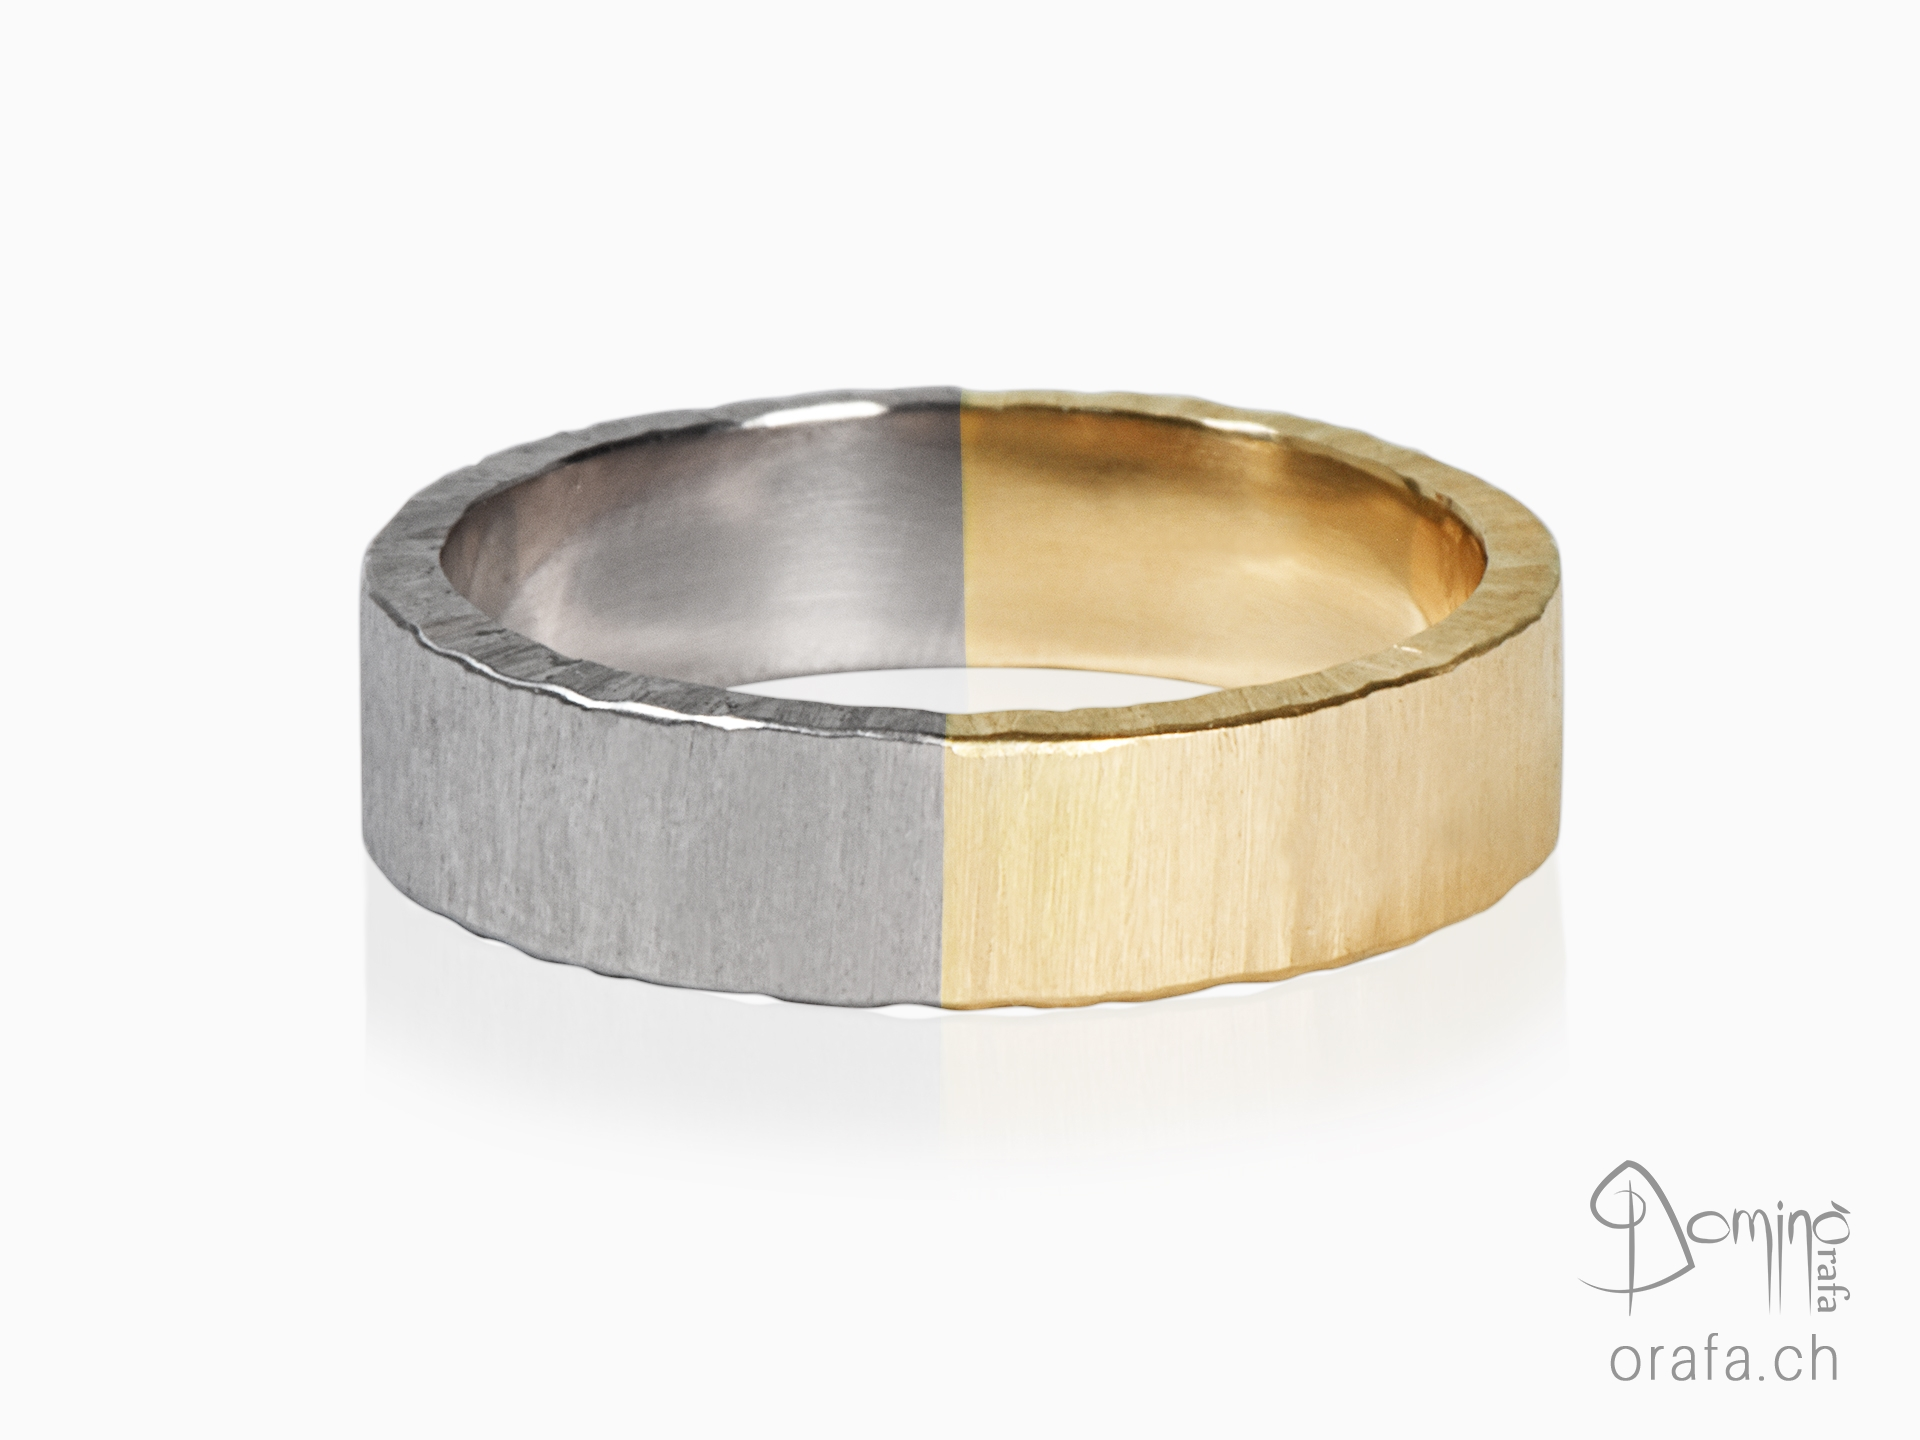 Two-color wedding rings, Opaca finishing and irregular edges